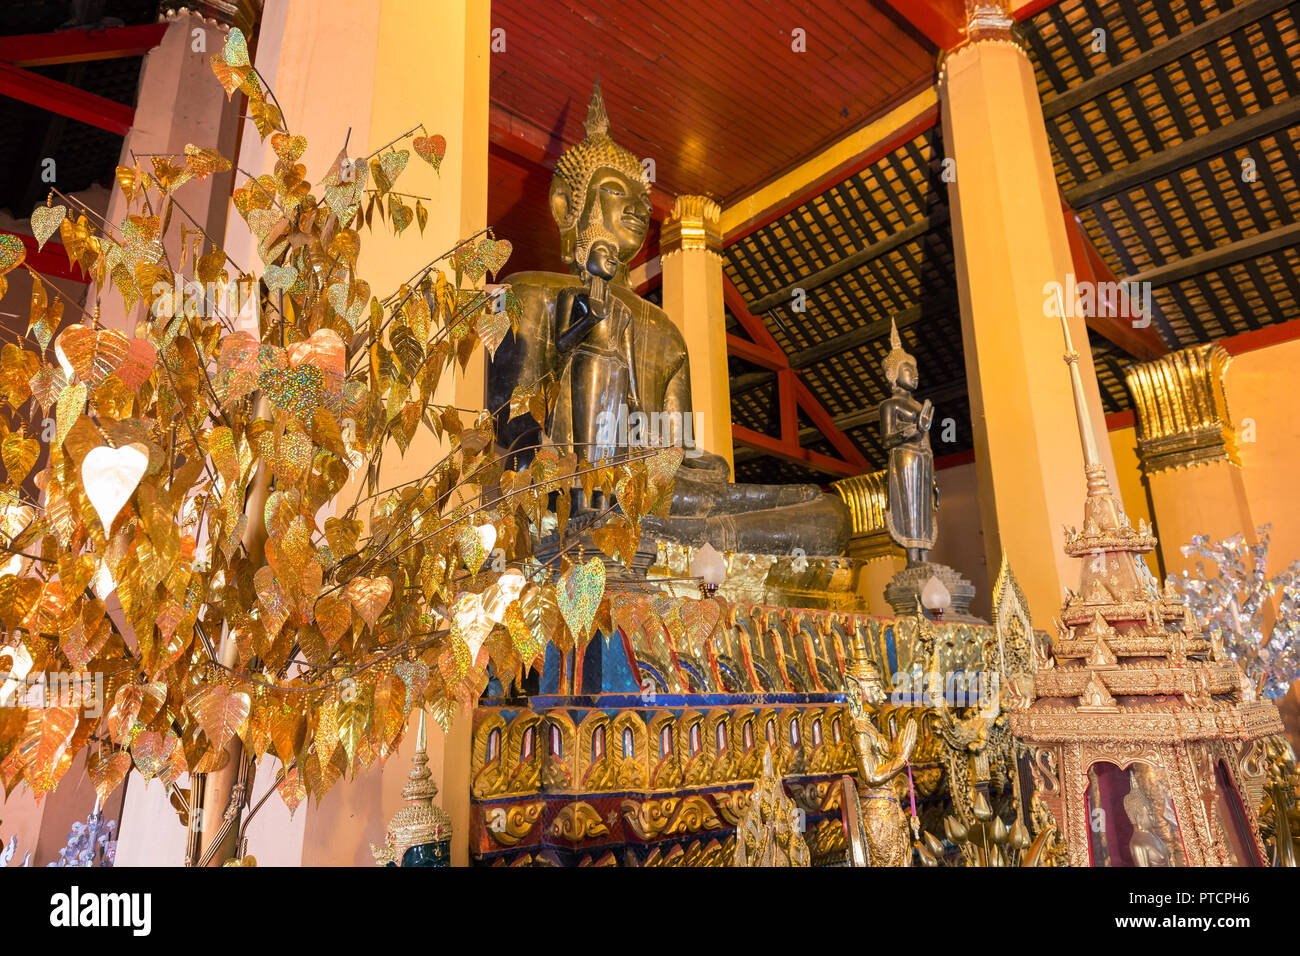 Altar with several golden Buddha statues and other items at the Wat Ong Teu Mahawihan (Temple of the Heavy Buddha), a Buddhist monastery, in Vientiane Stock Photo